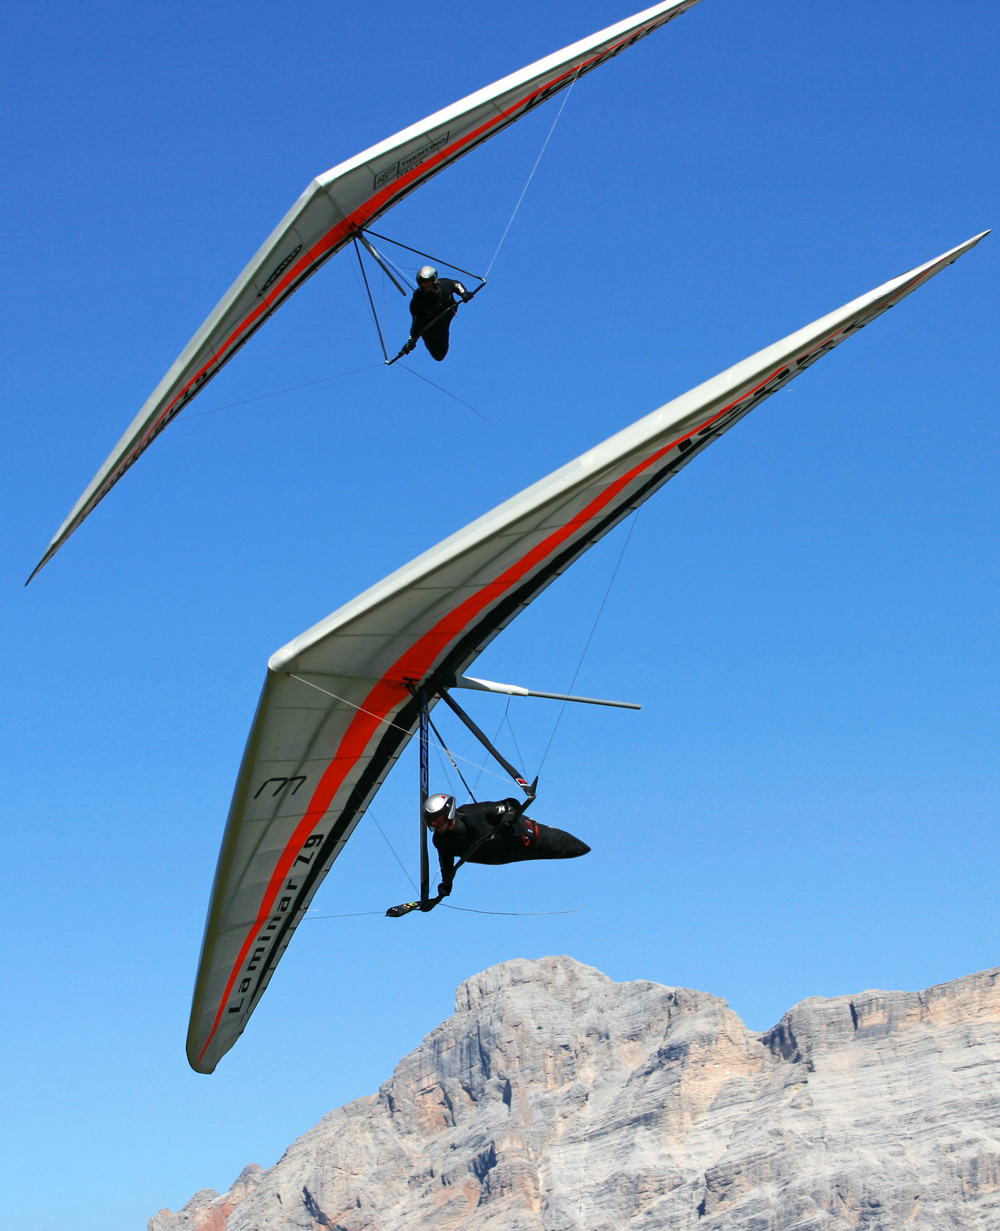 1000x1231 - Hang Gliding Wallpapers 20